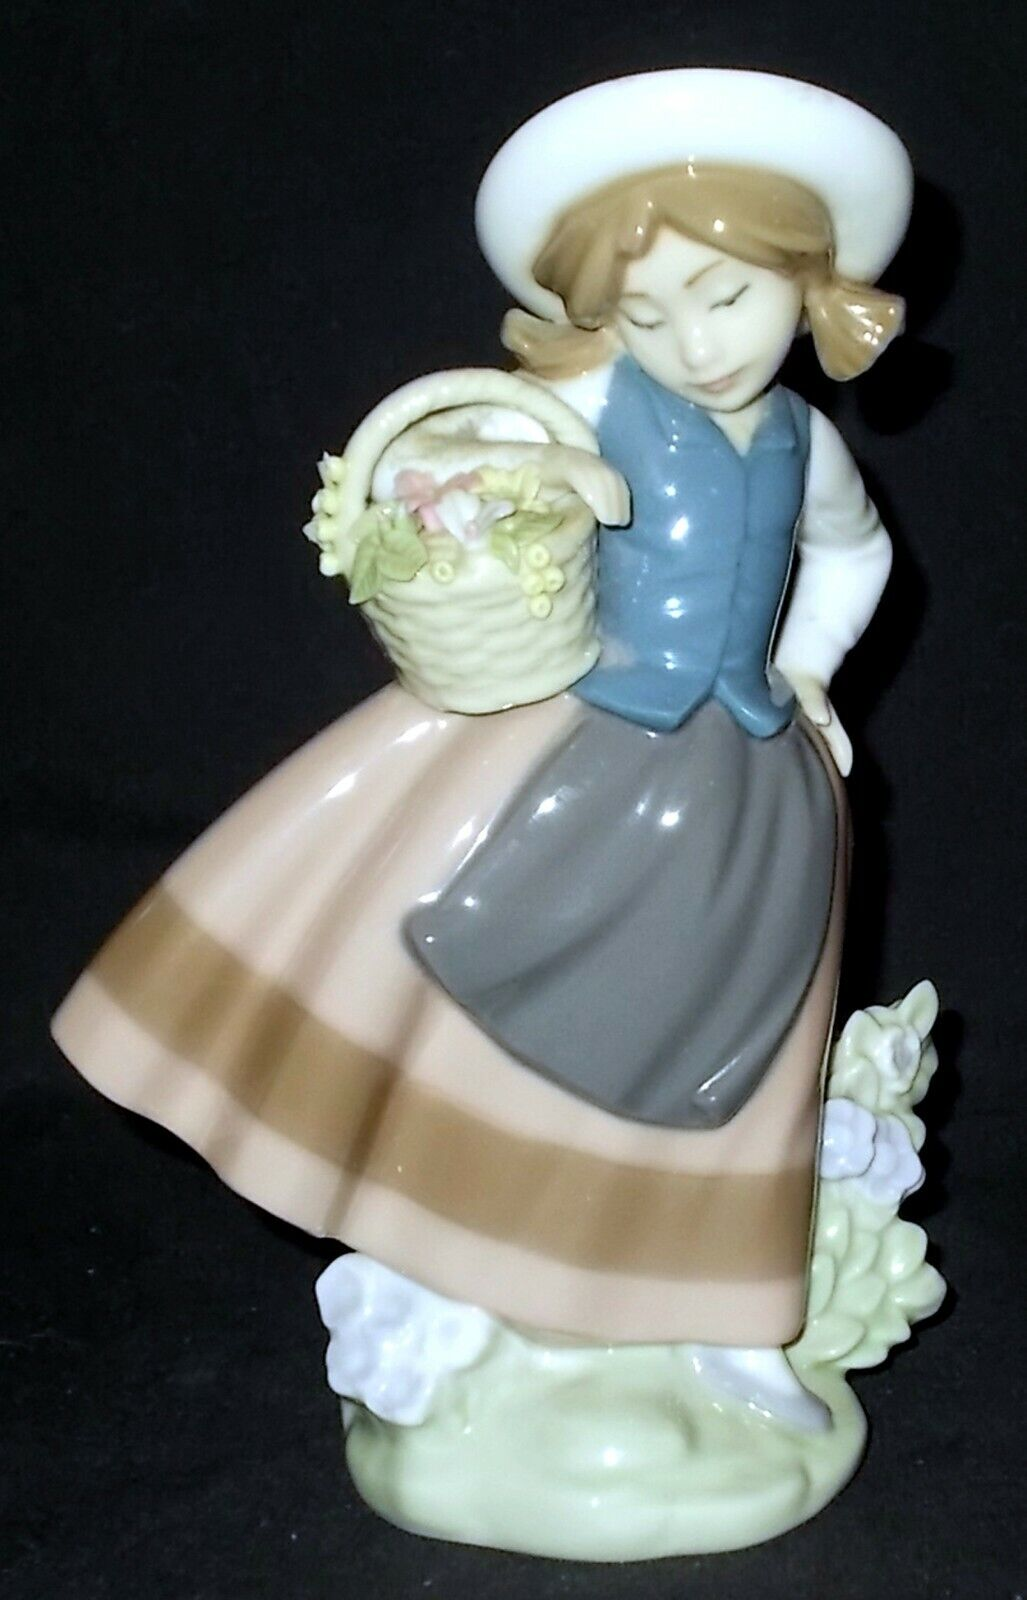 Image 1 - Lladro-SWEET-SCENT-5221-Figure-Made-in-Spain